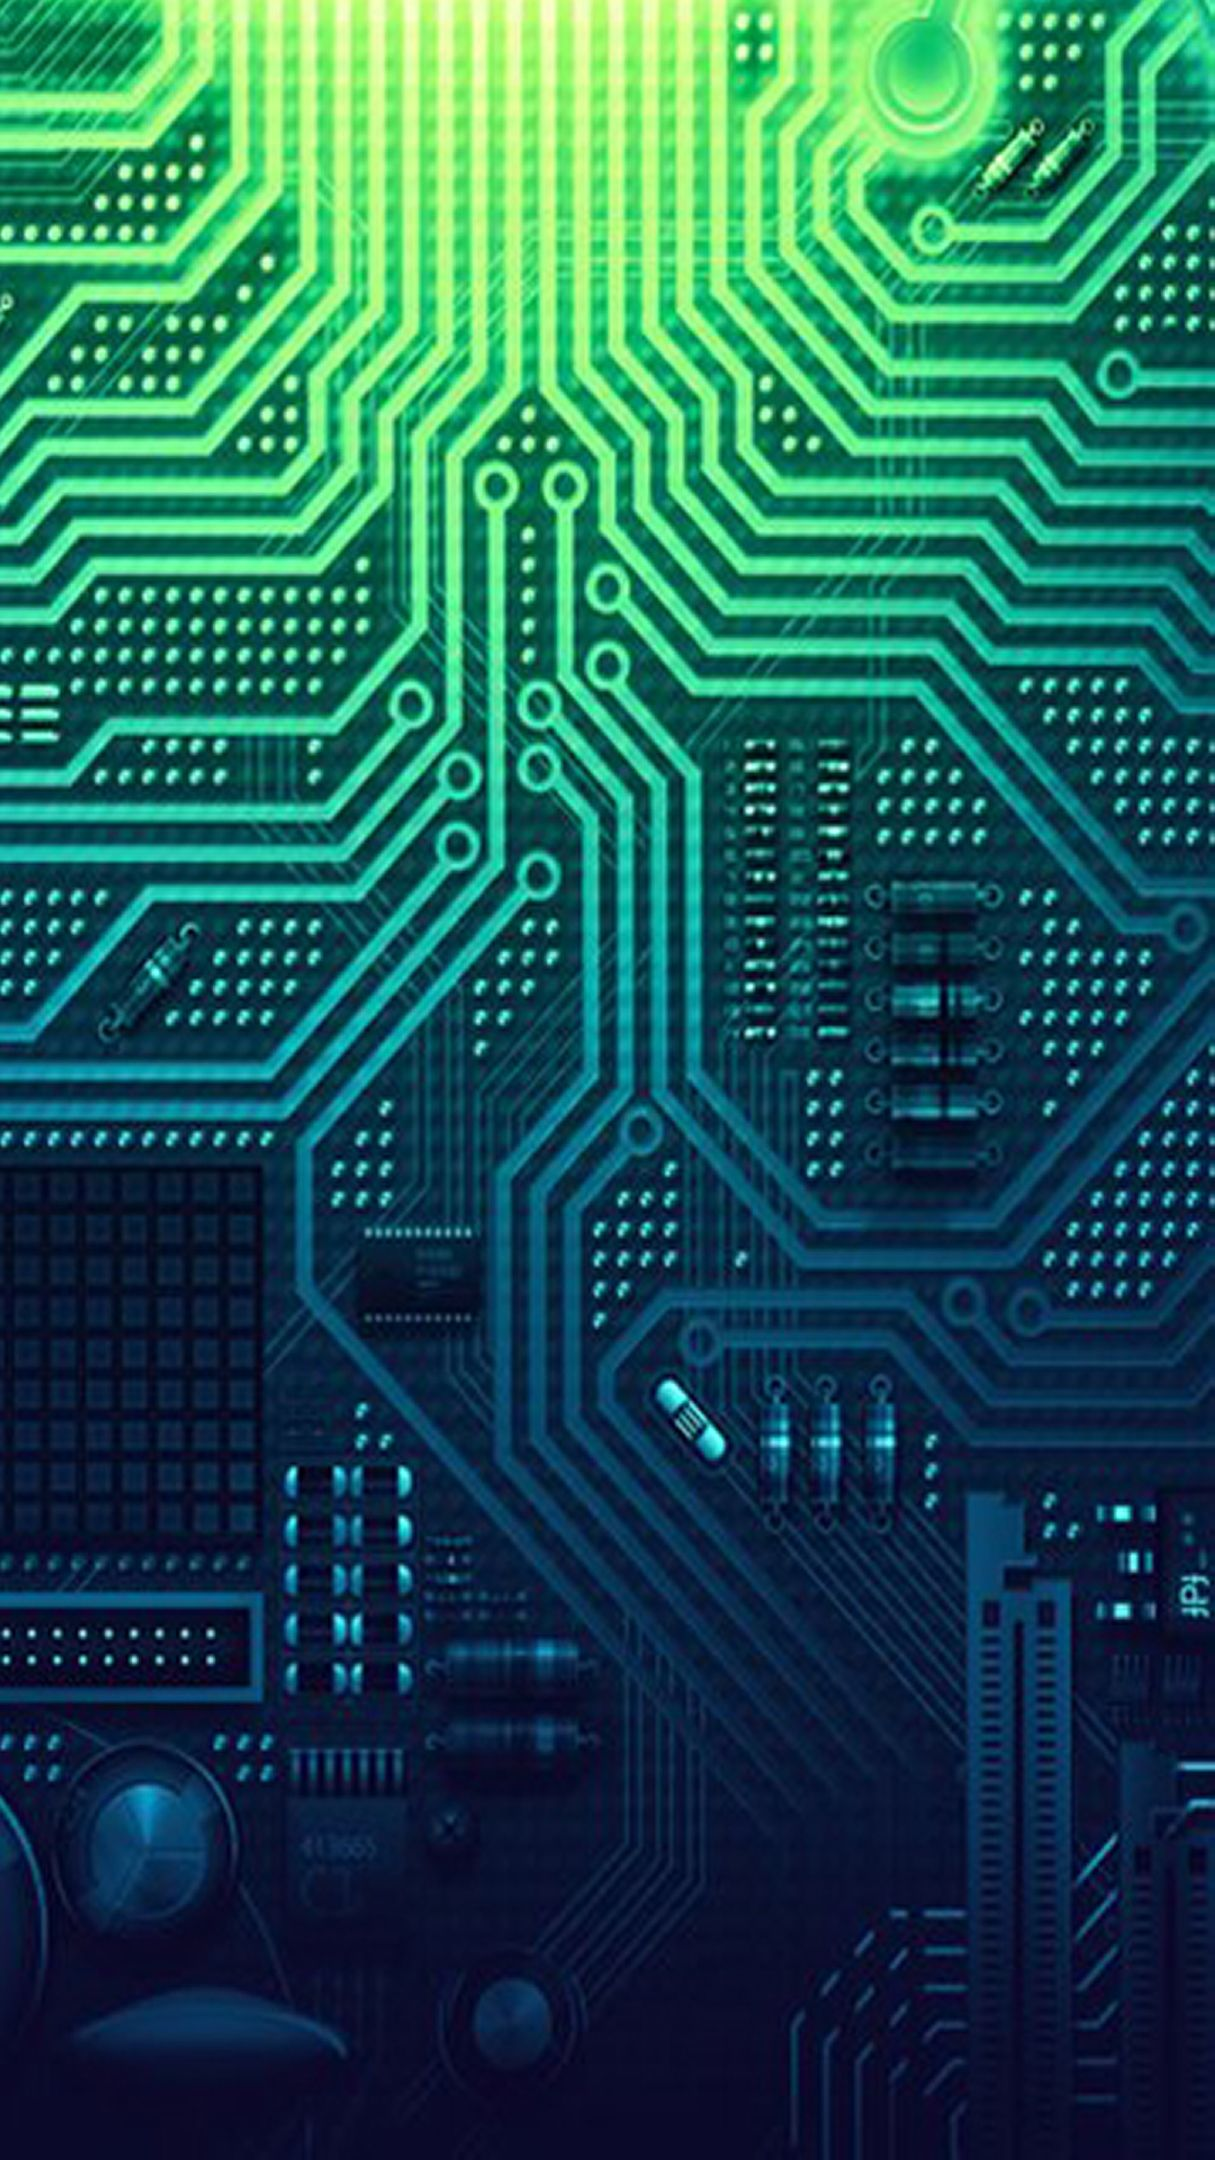 Wallpaper 4k For Mobile Free Download خلفيات 4k للجوال Tecnologis Circuit Board Design Circuit Design Circuit Board